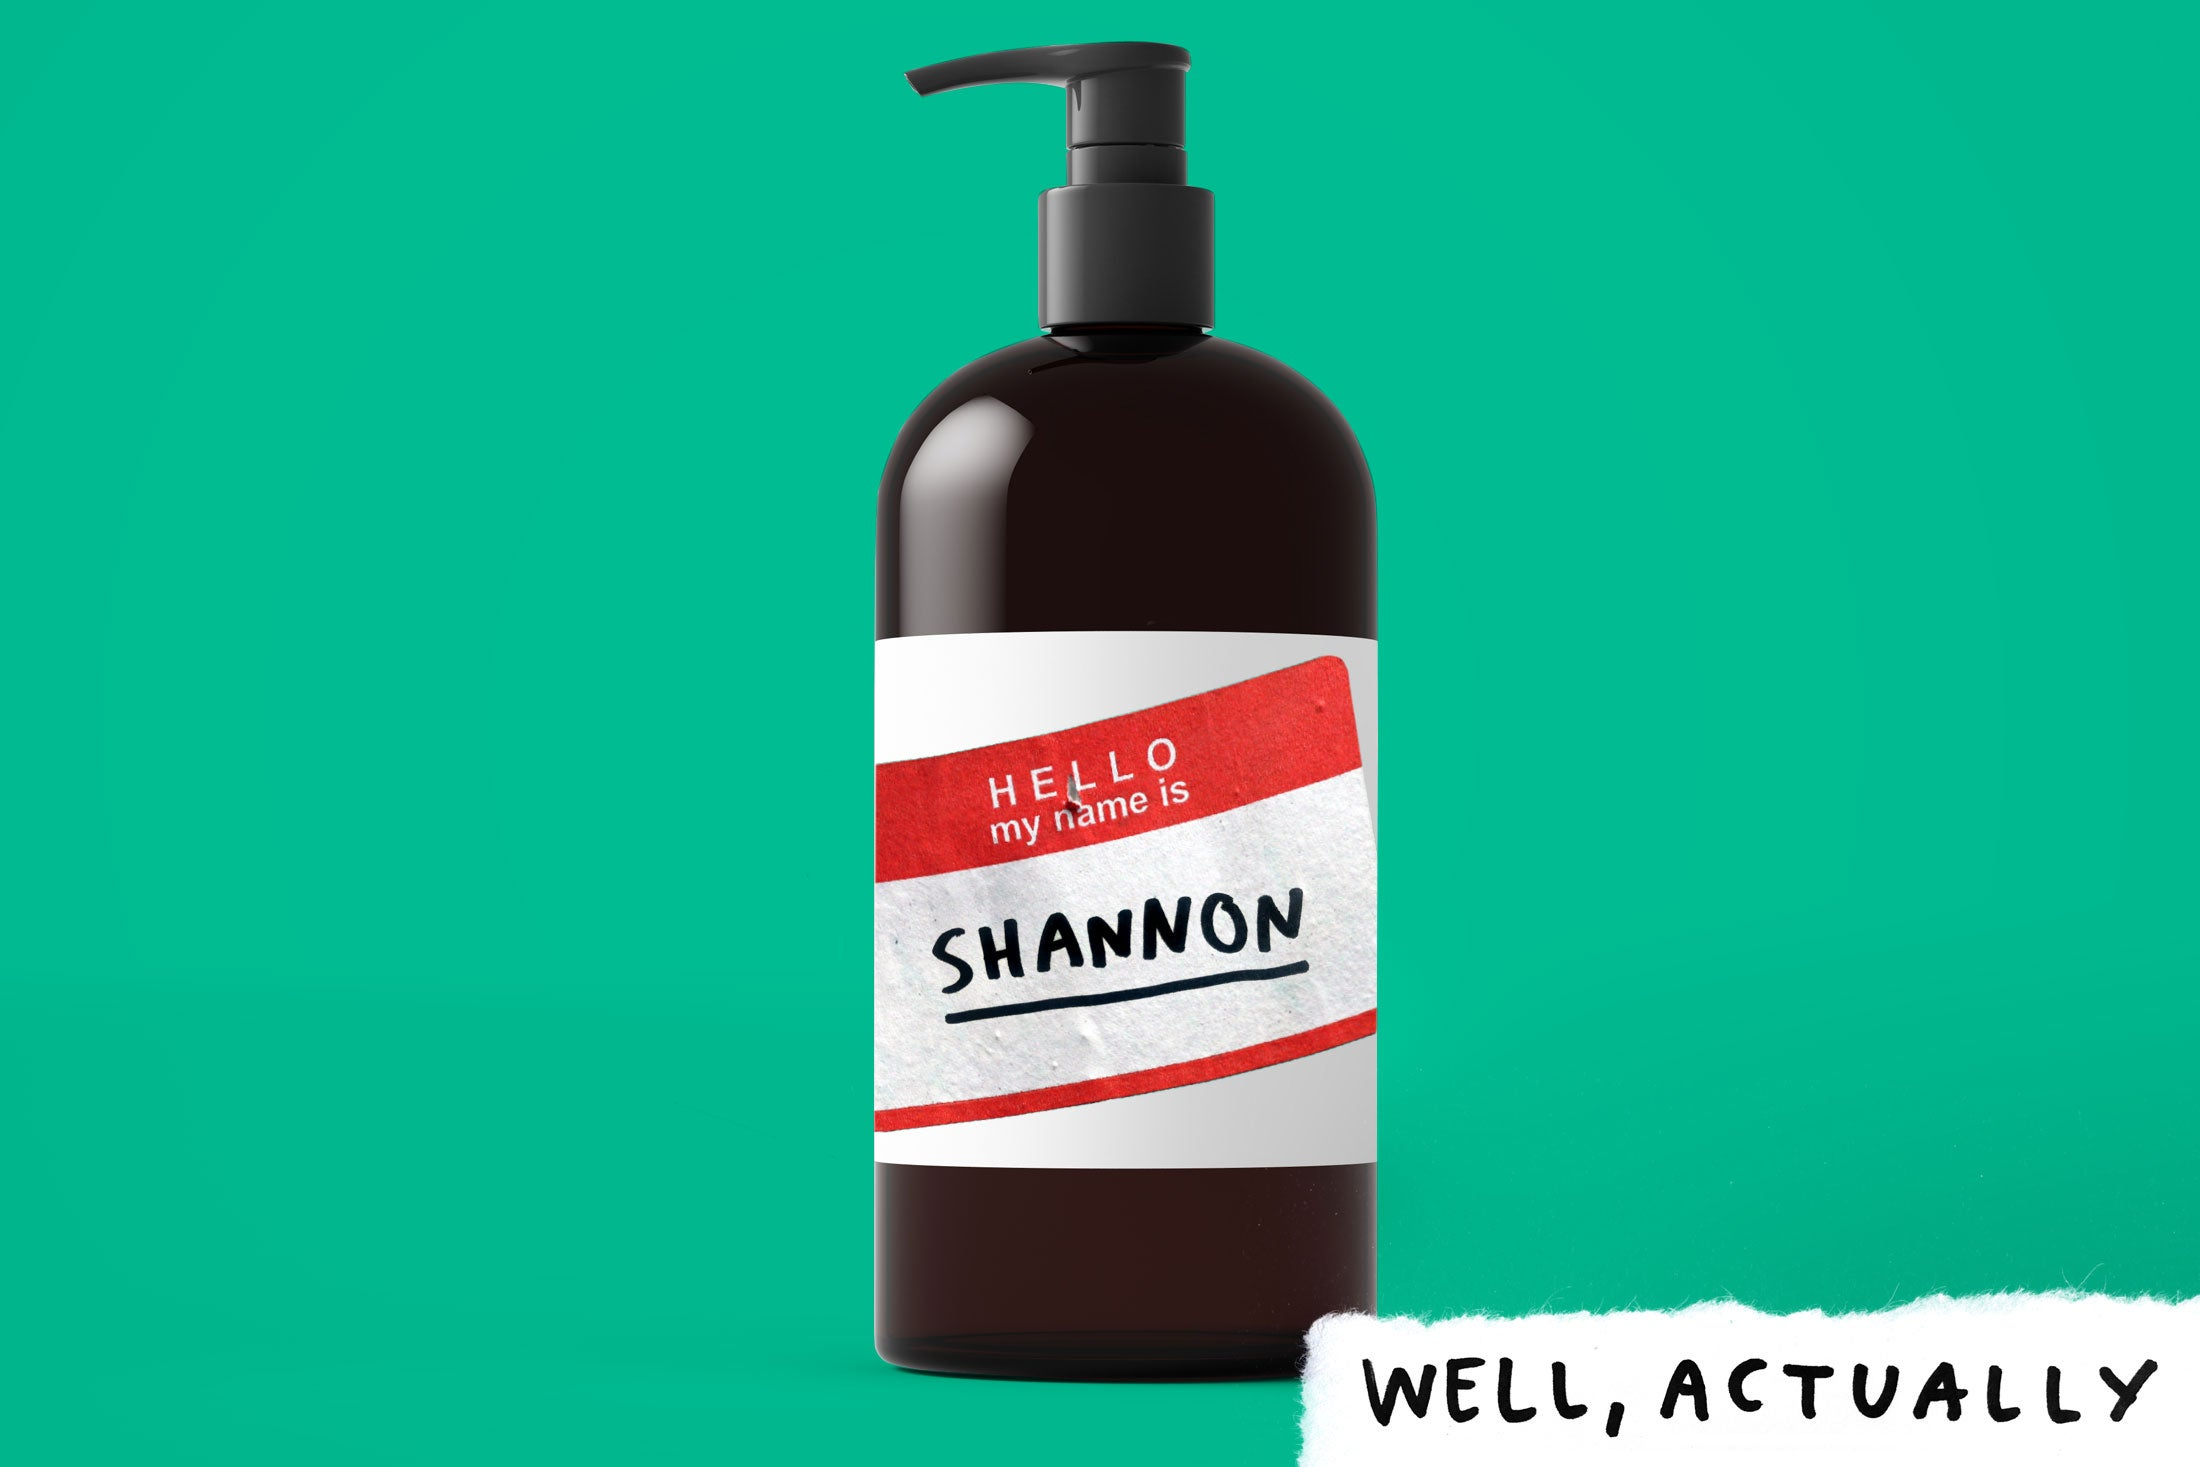 Fancy shampoo bottle with a generic My Name Is sticker reading SHANNON attached.